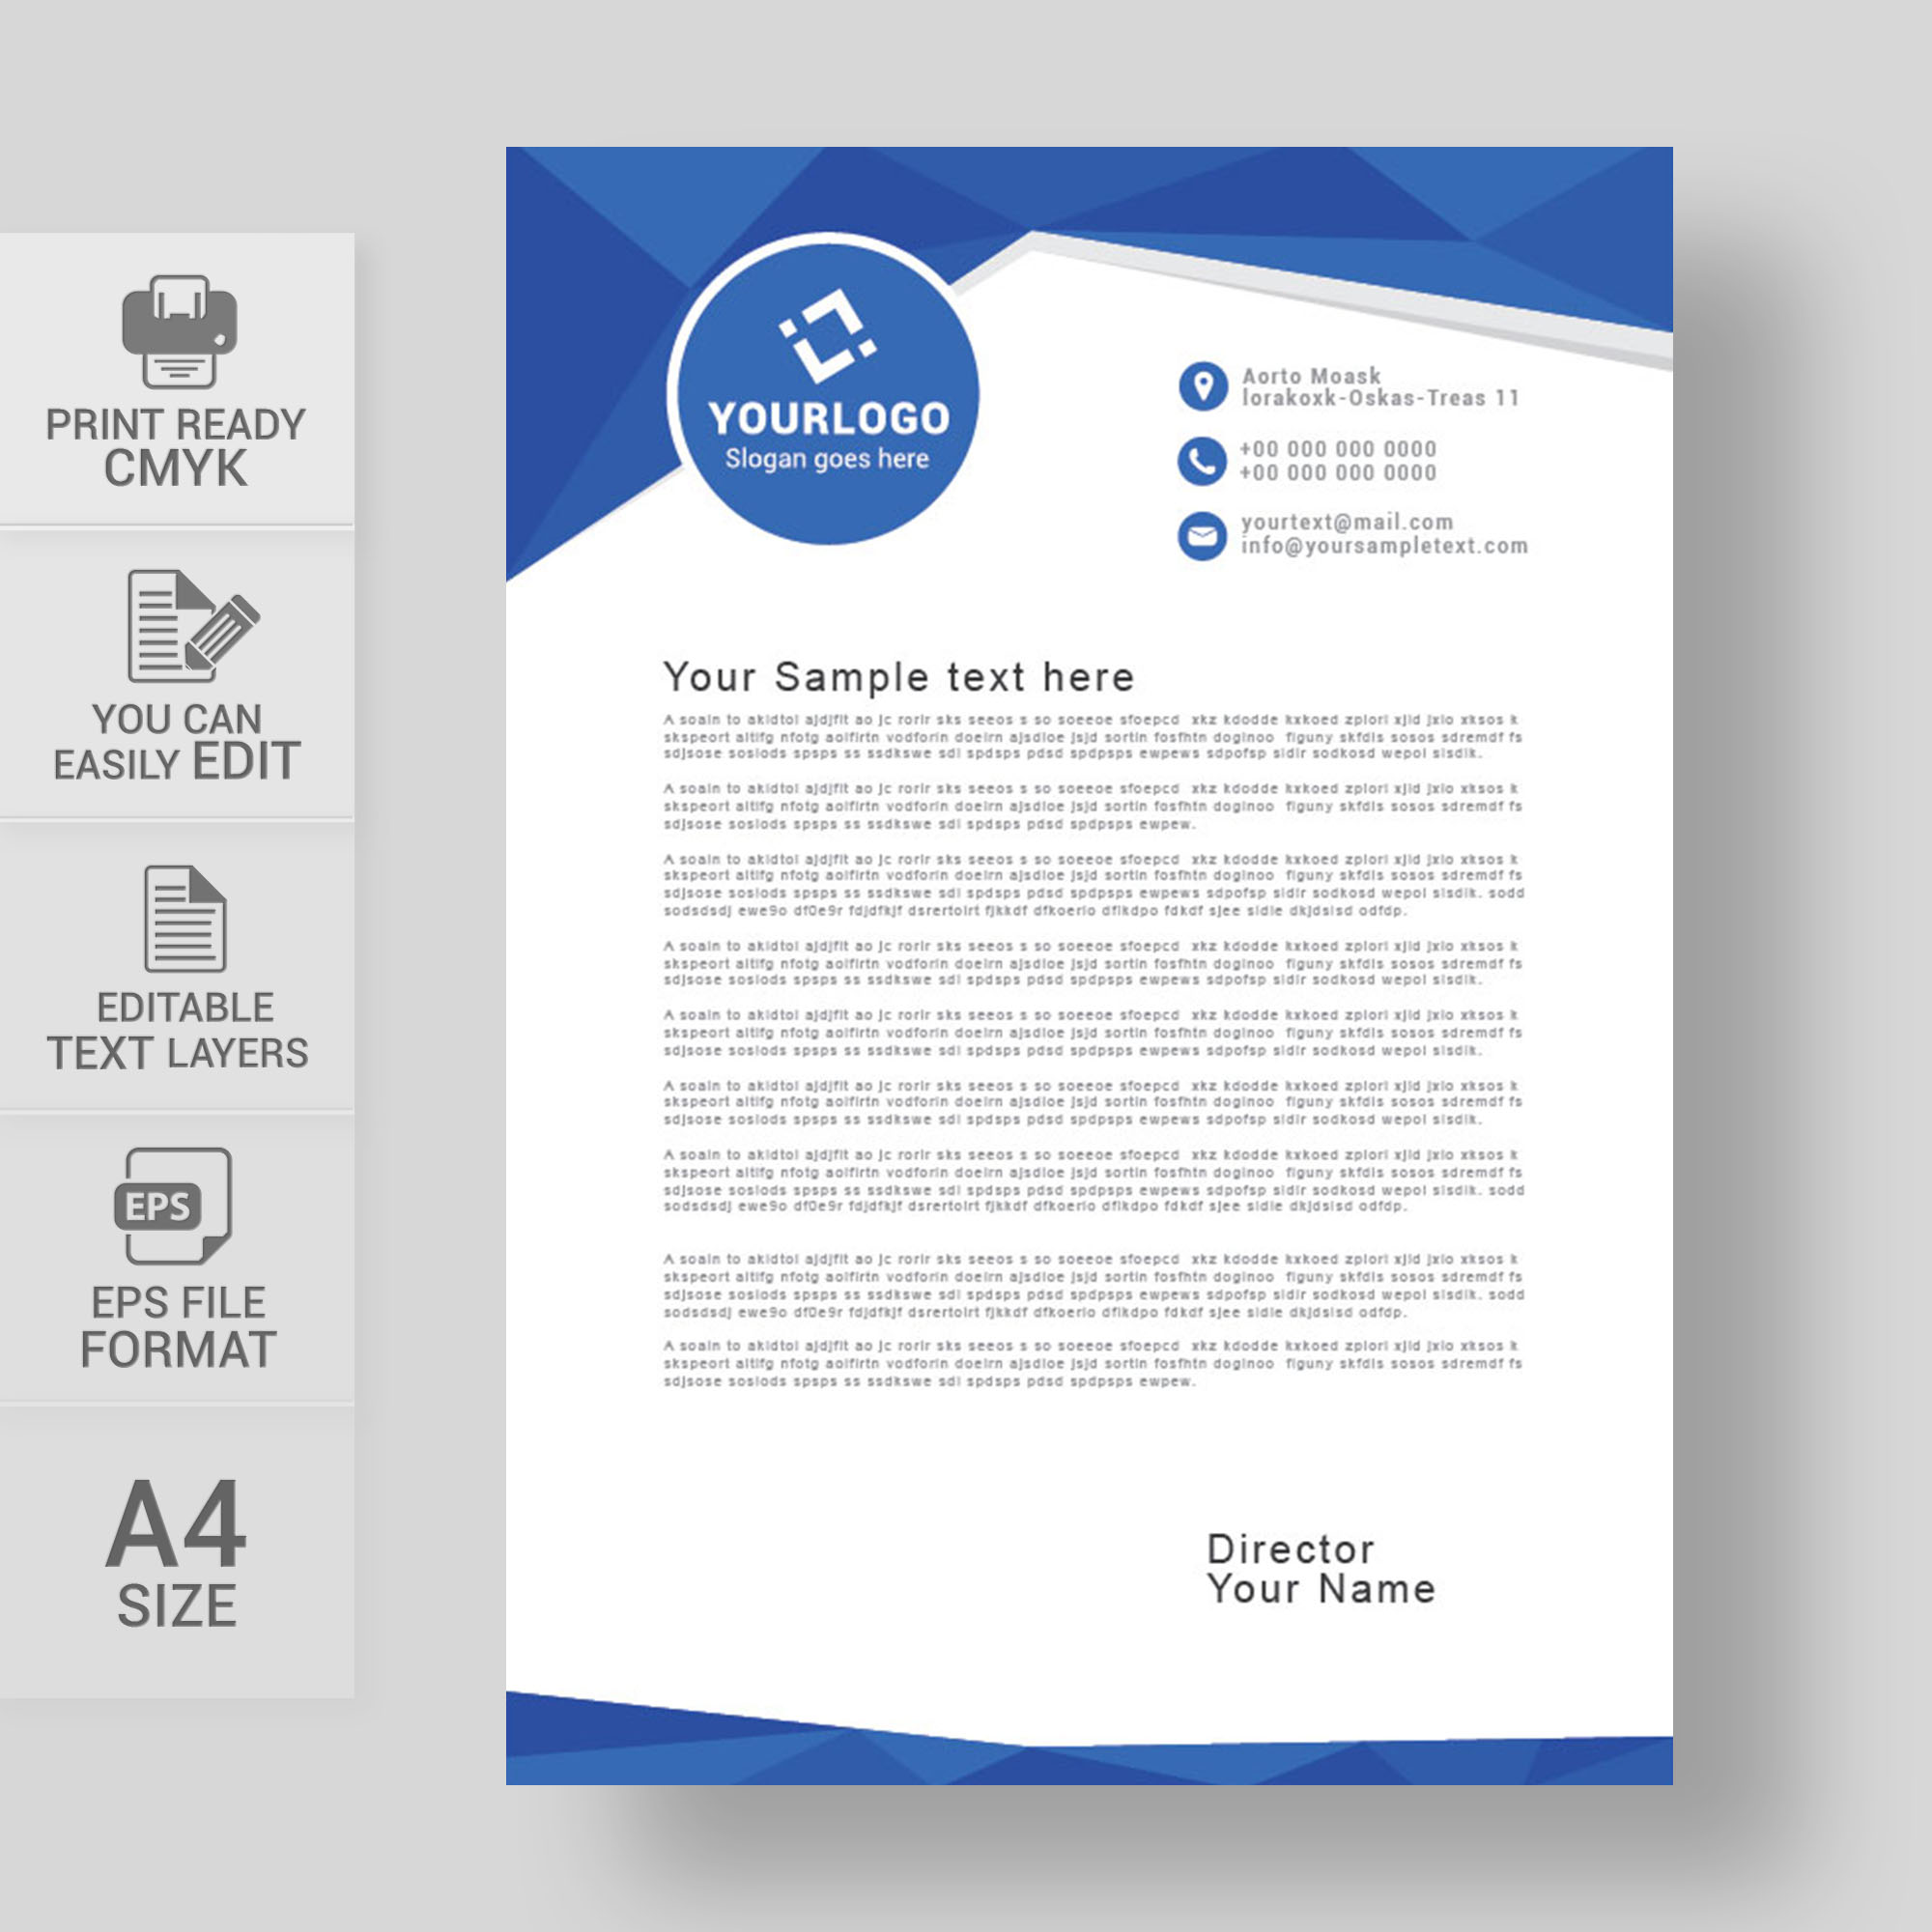 Abstract company letterhead design free download wisxi letterheads letterhead design letterhead template print template vector abstract business altavistaventures Gallery